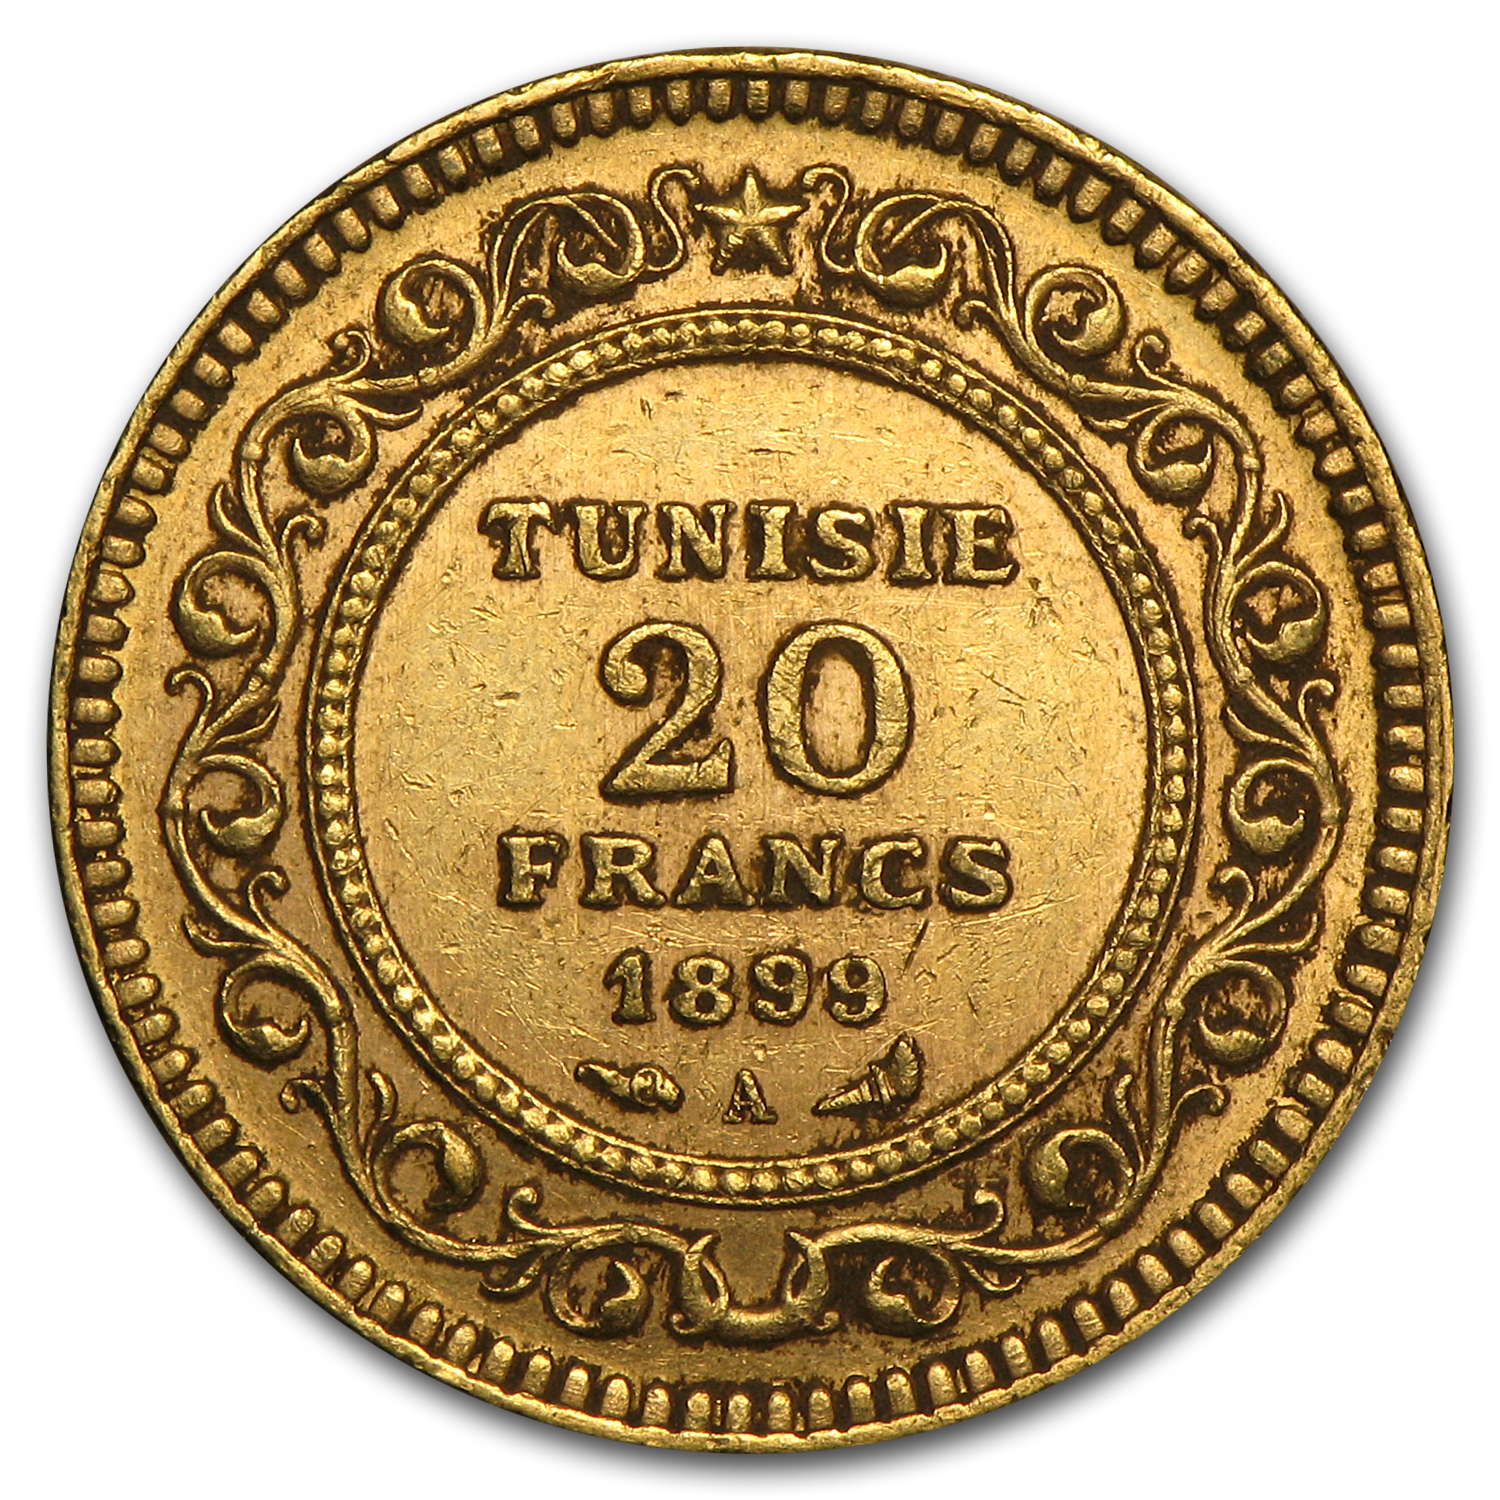 Tunisia Gold 20 Francs (Avg Circ) Random Dates